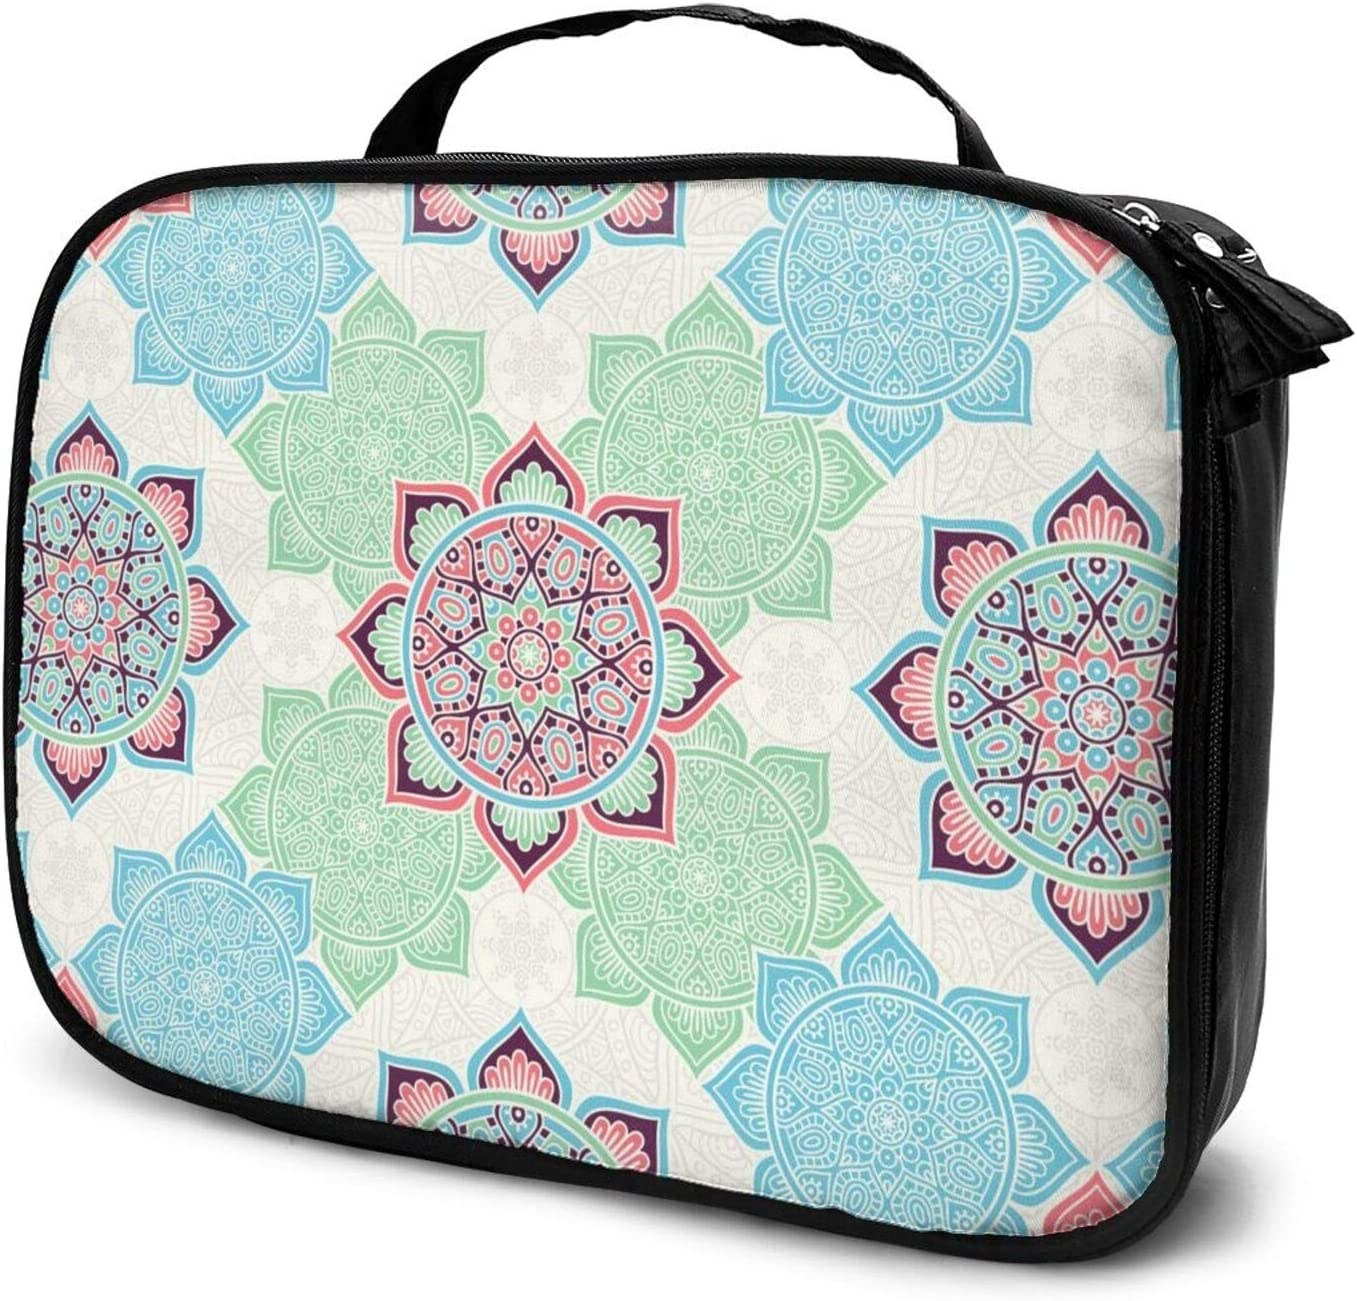 Pink Green Blue Max 80% OFF Bohemian Retro Travel Train Cheap super special price Case Pattern Makeup